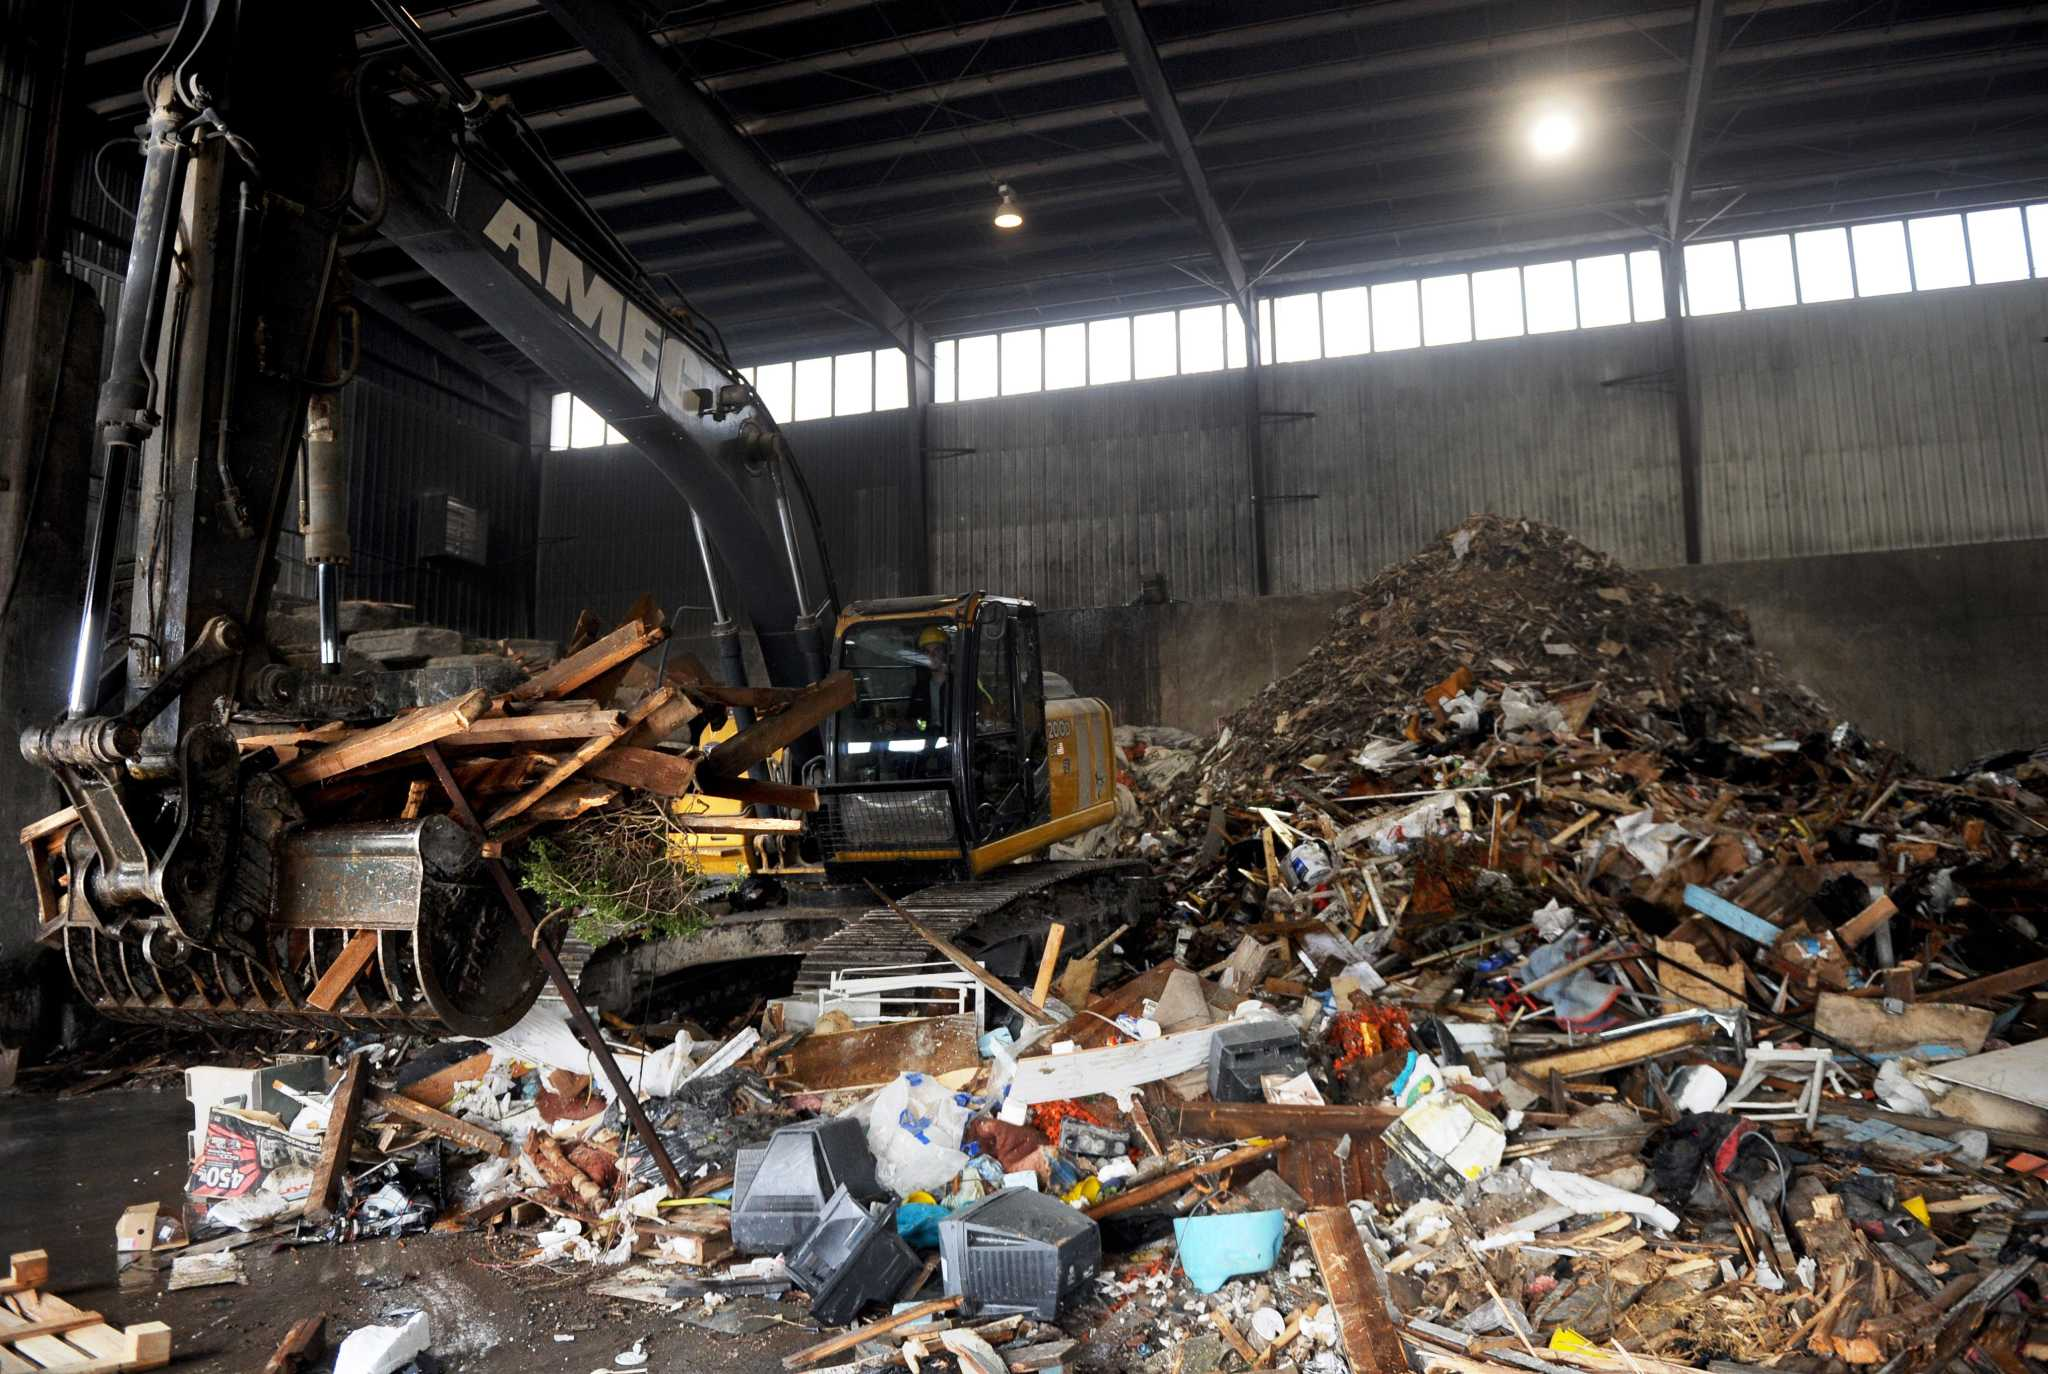 Connecticut's outdated recycling system could be due for an overhaul